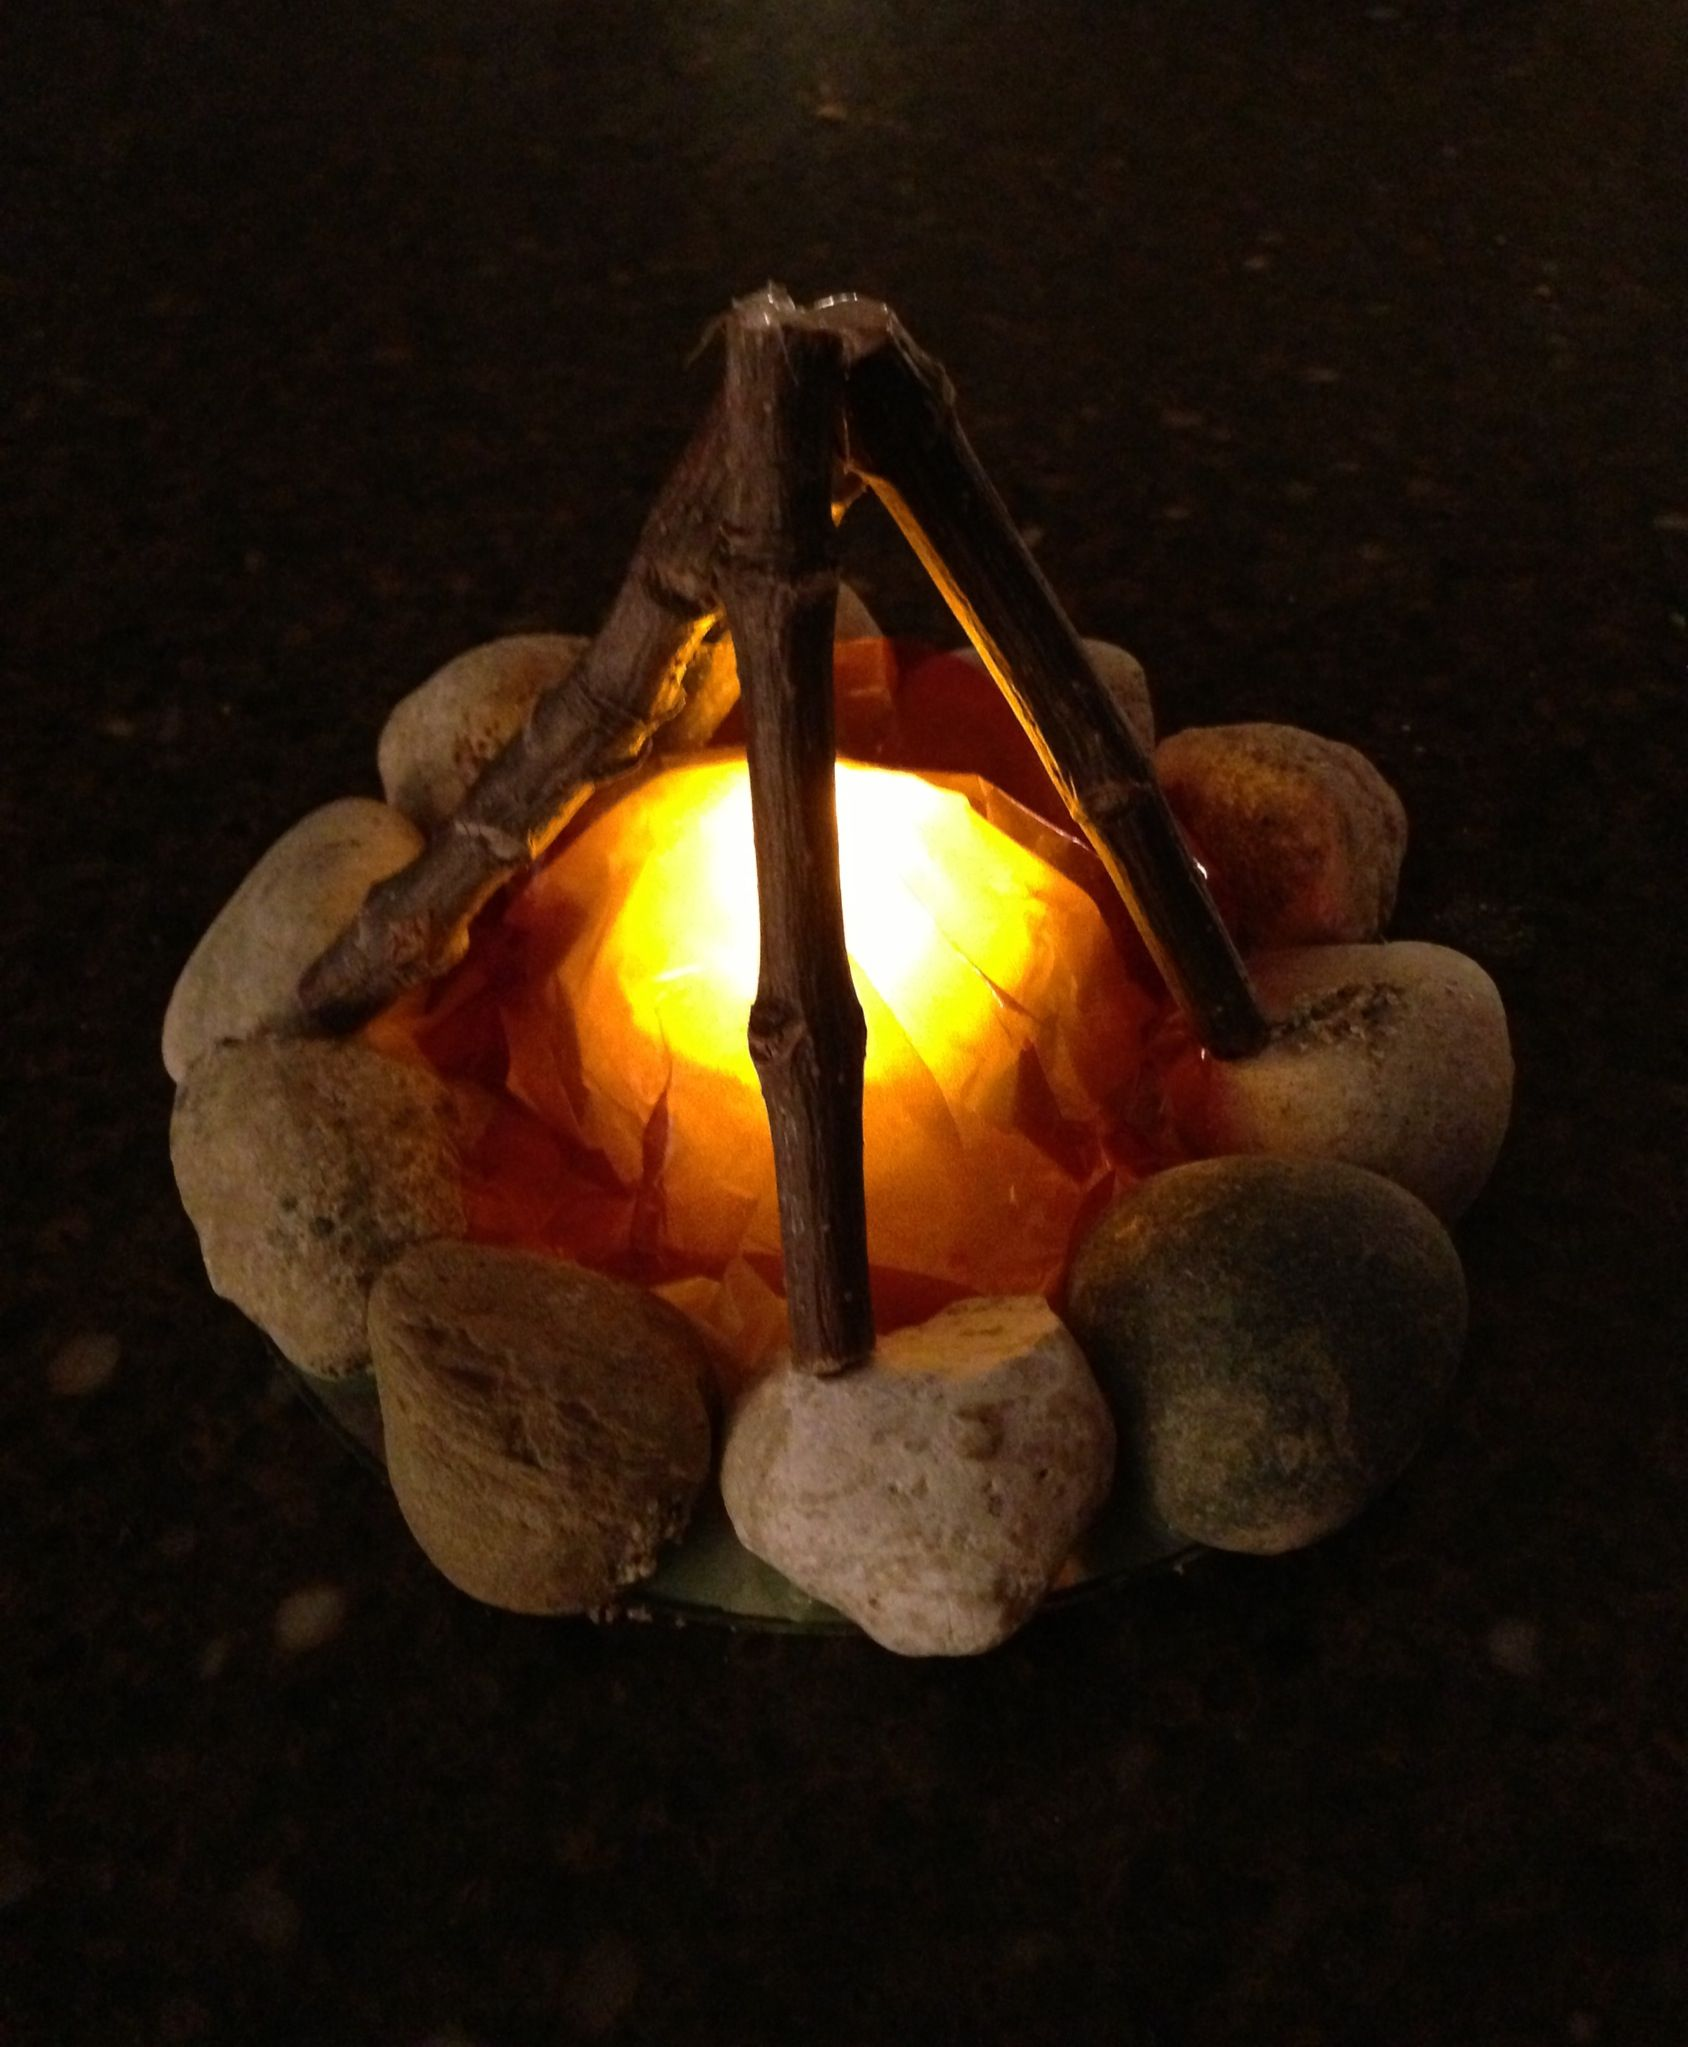 Campfire Nightlight: Glue rocks around perimeter of an old CD with tacky glue. Place battery-operated Tealight in center of CD; do not glue down. Place 4-5 sticks up against rocks in a teepee shape. Use hot glue gun to secure tops together. Trace around CD and cut out one circle each of yellow tissue paper and red cellophane. When glues are dry crinkle papers and place over tealight, place teepee on top to secure.